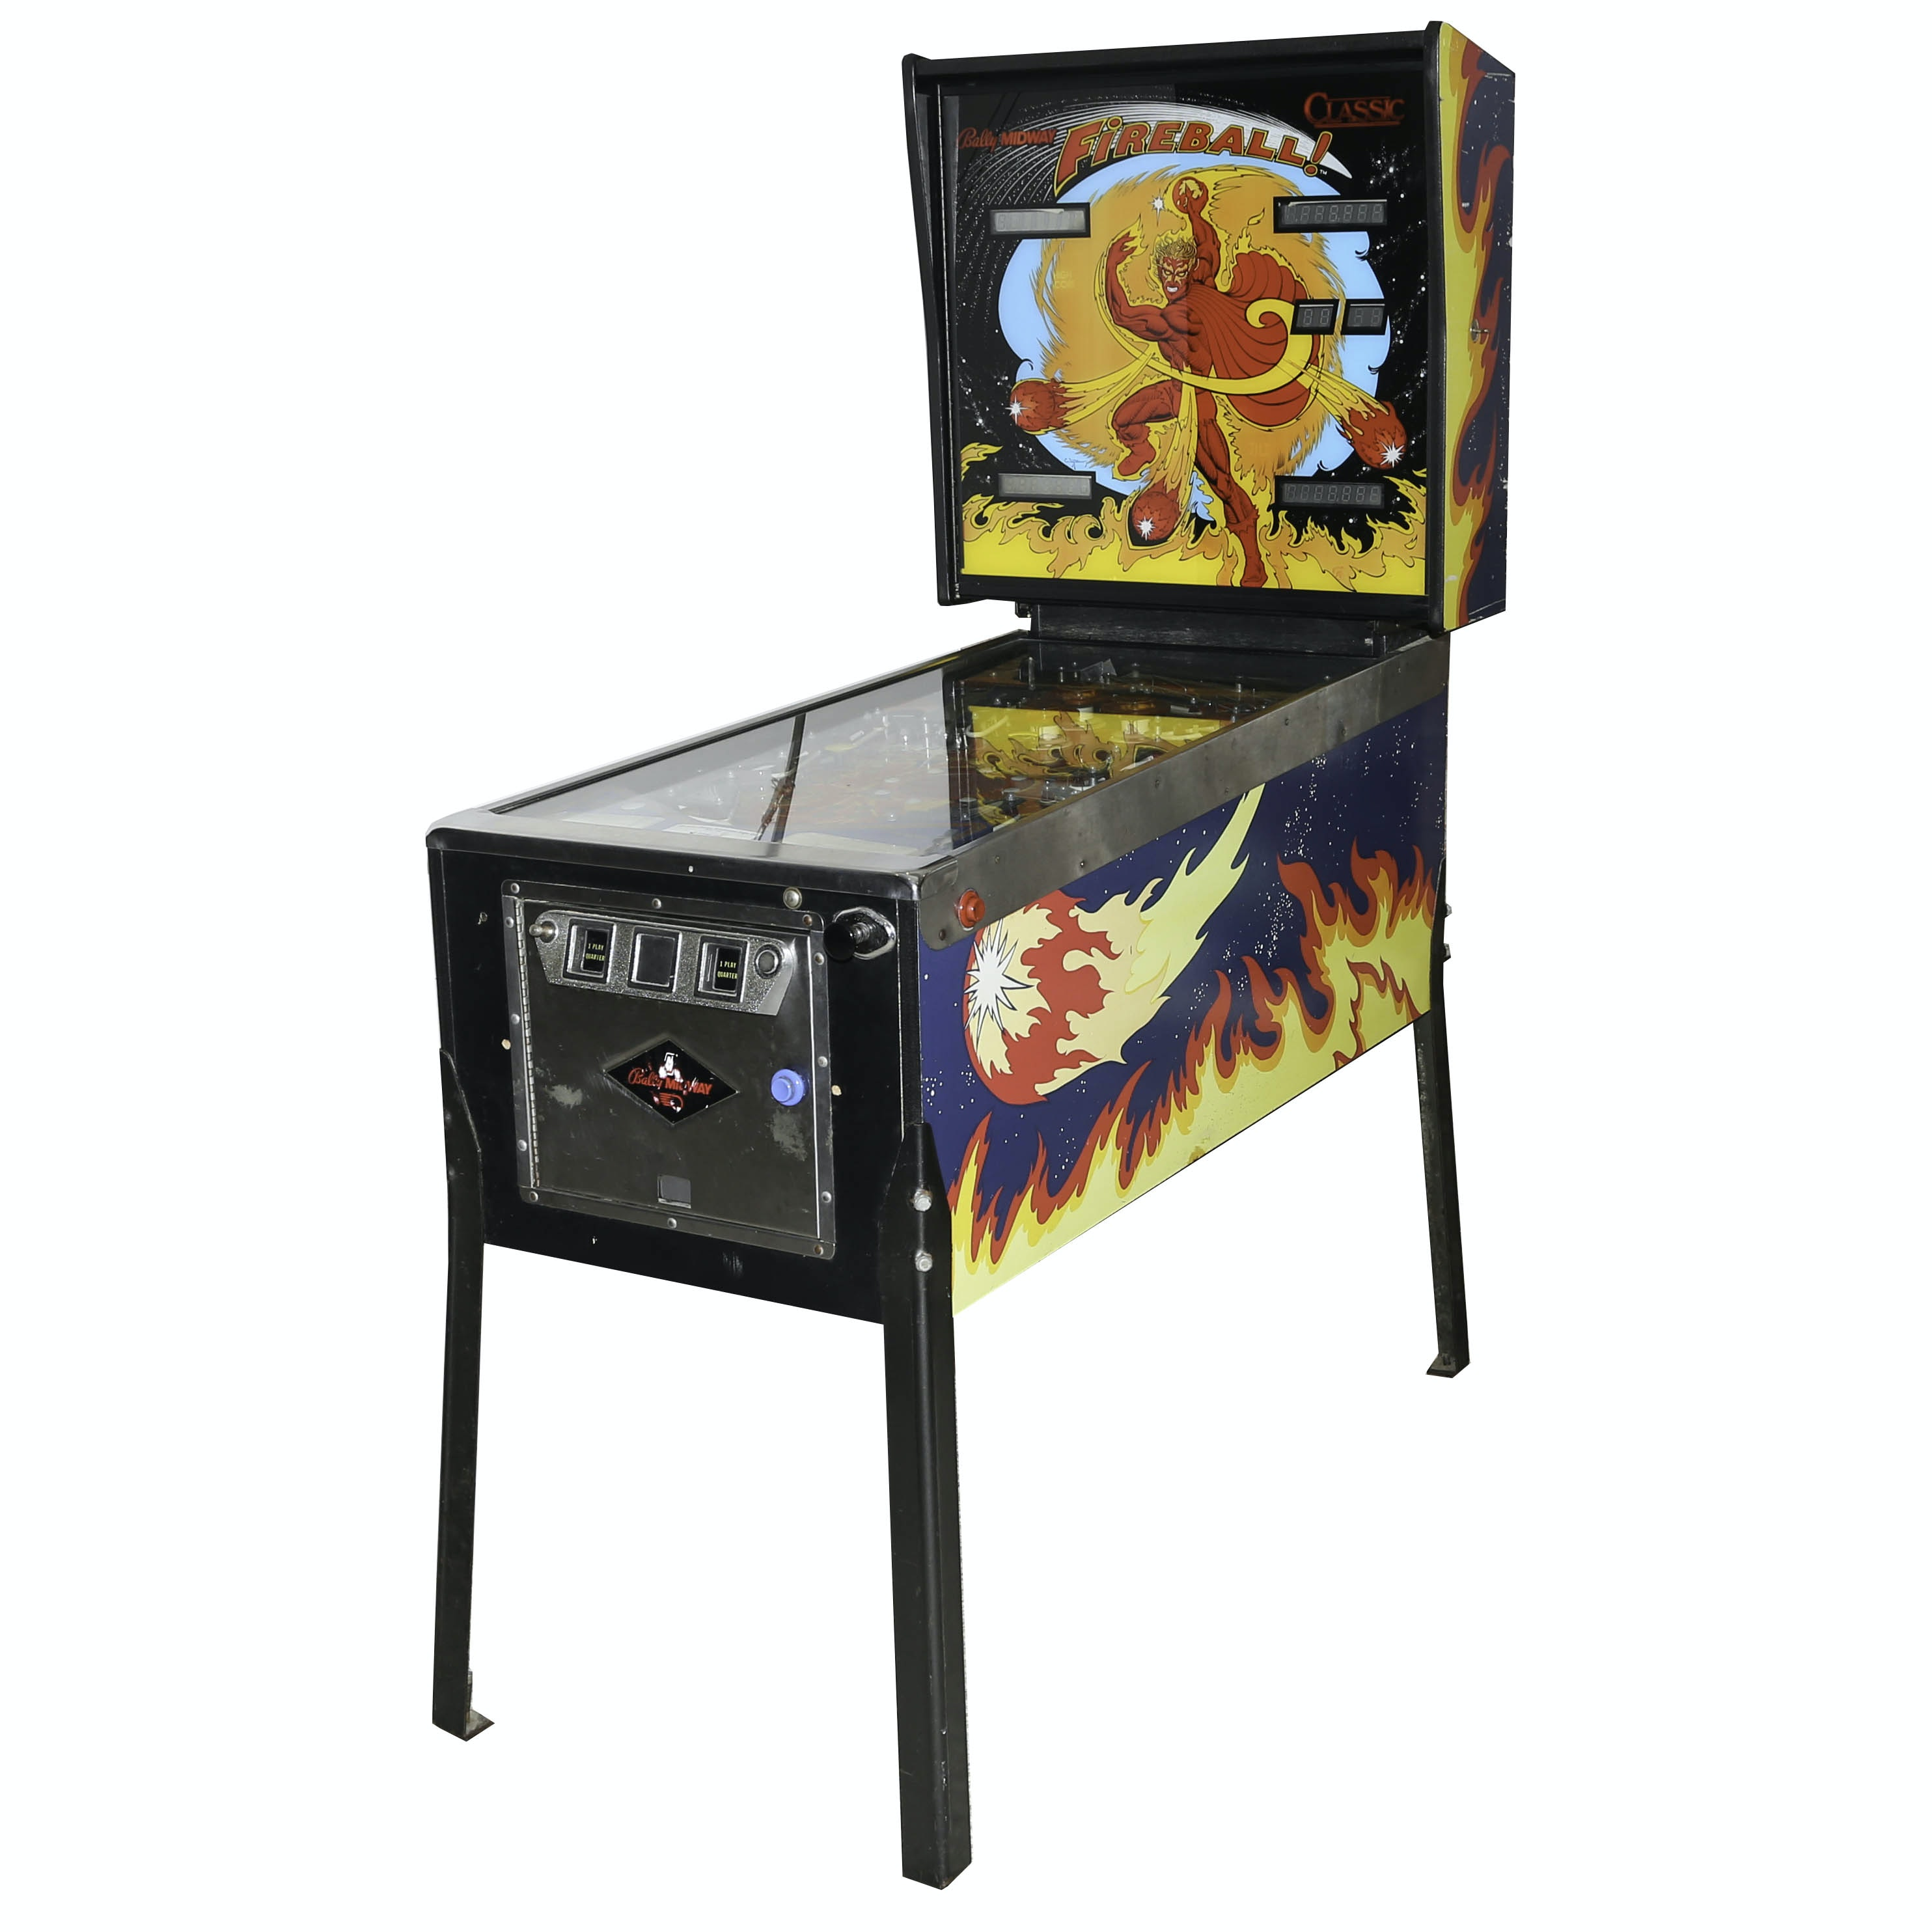 "Bally Midway ""Fireball Classic"" Pinball Machine"